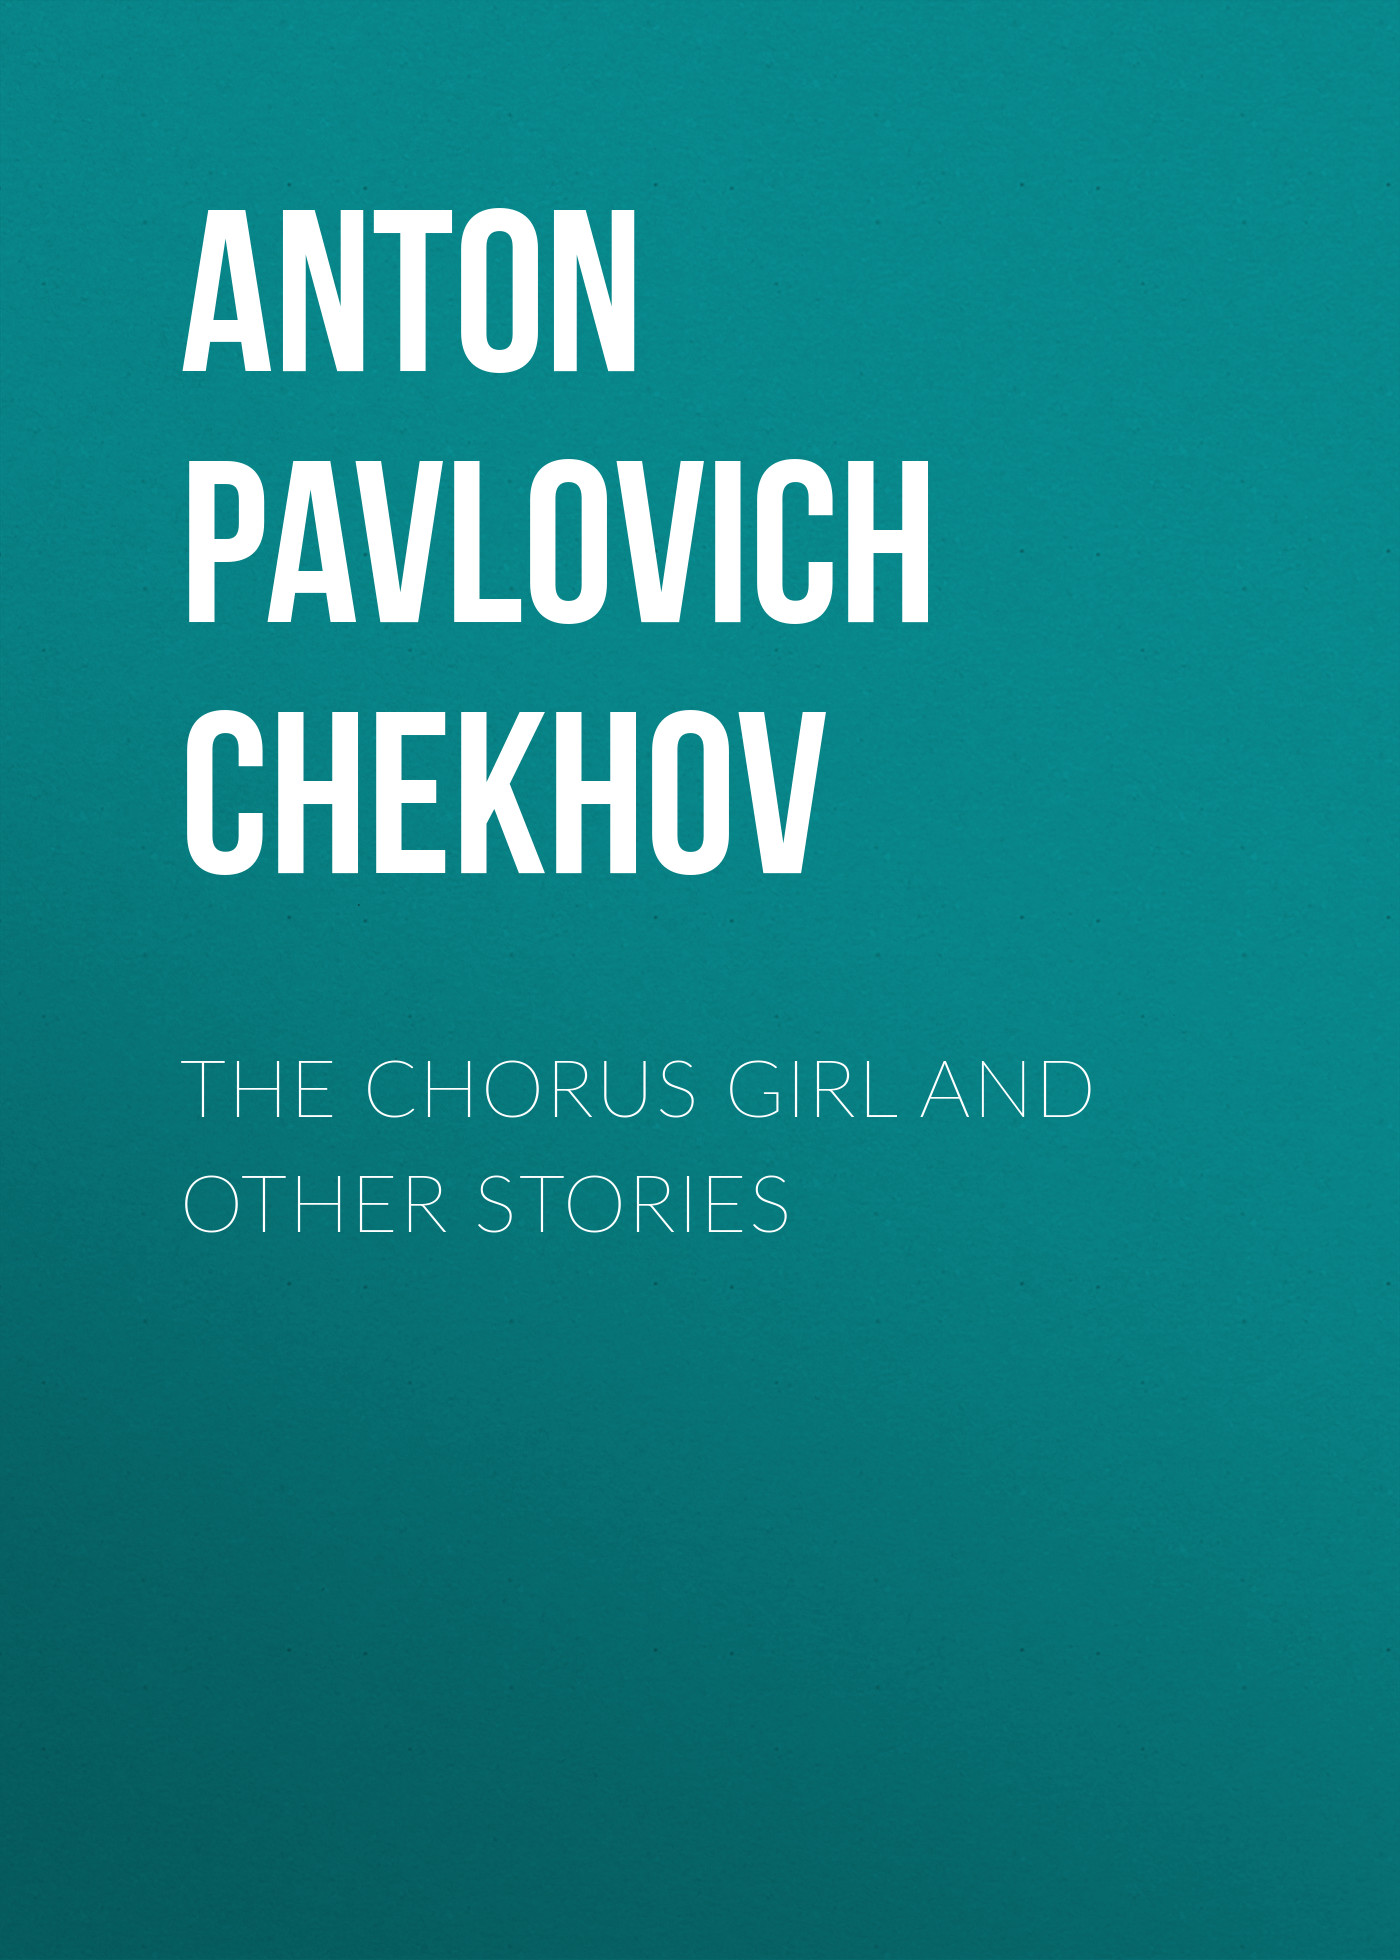 Антон Чехов The Chorus Girl and Other Stories gps модуль для iroad v9 a9 t10 q7 q9